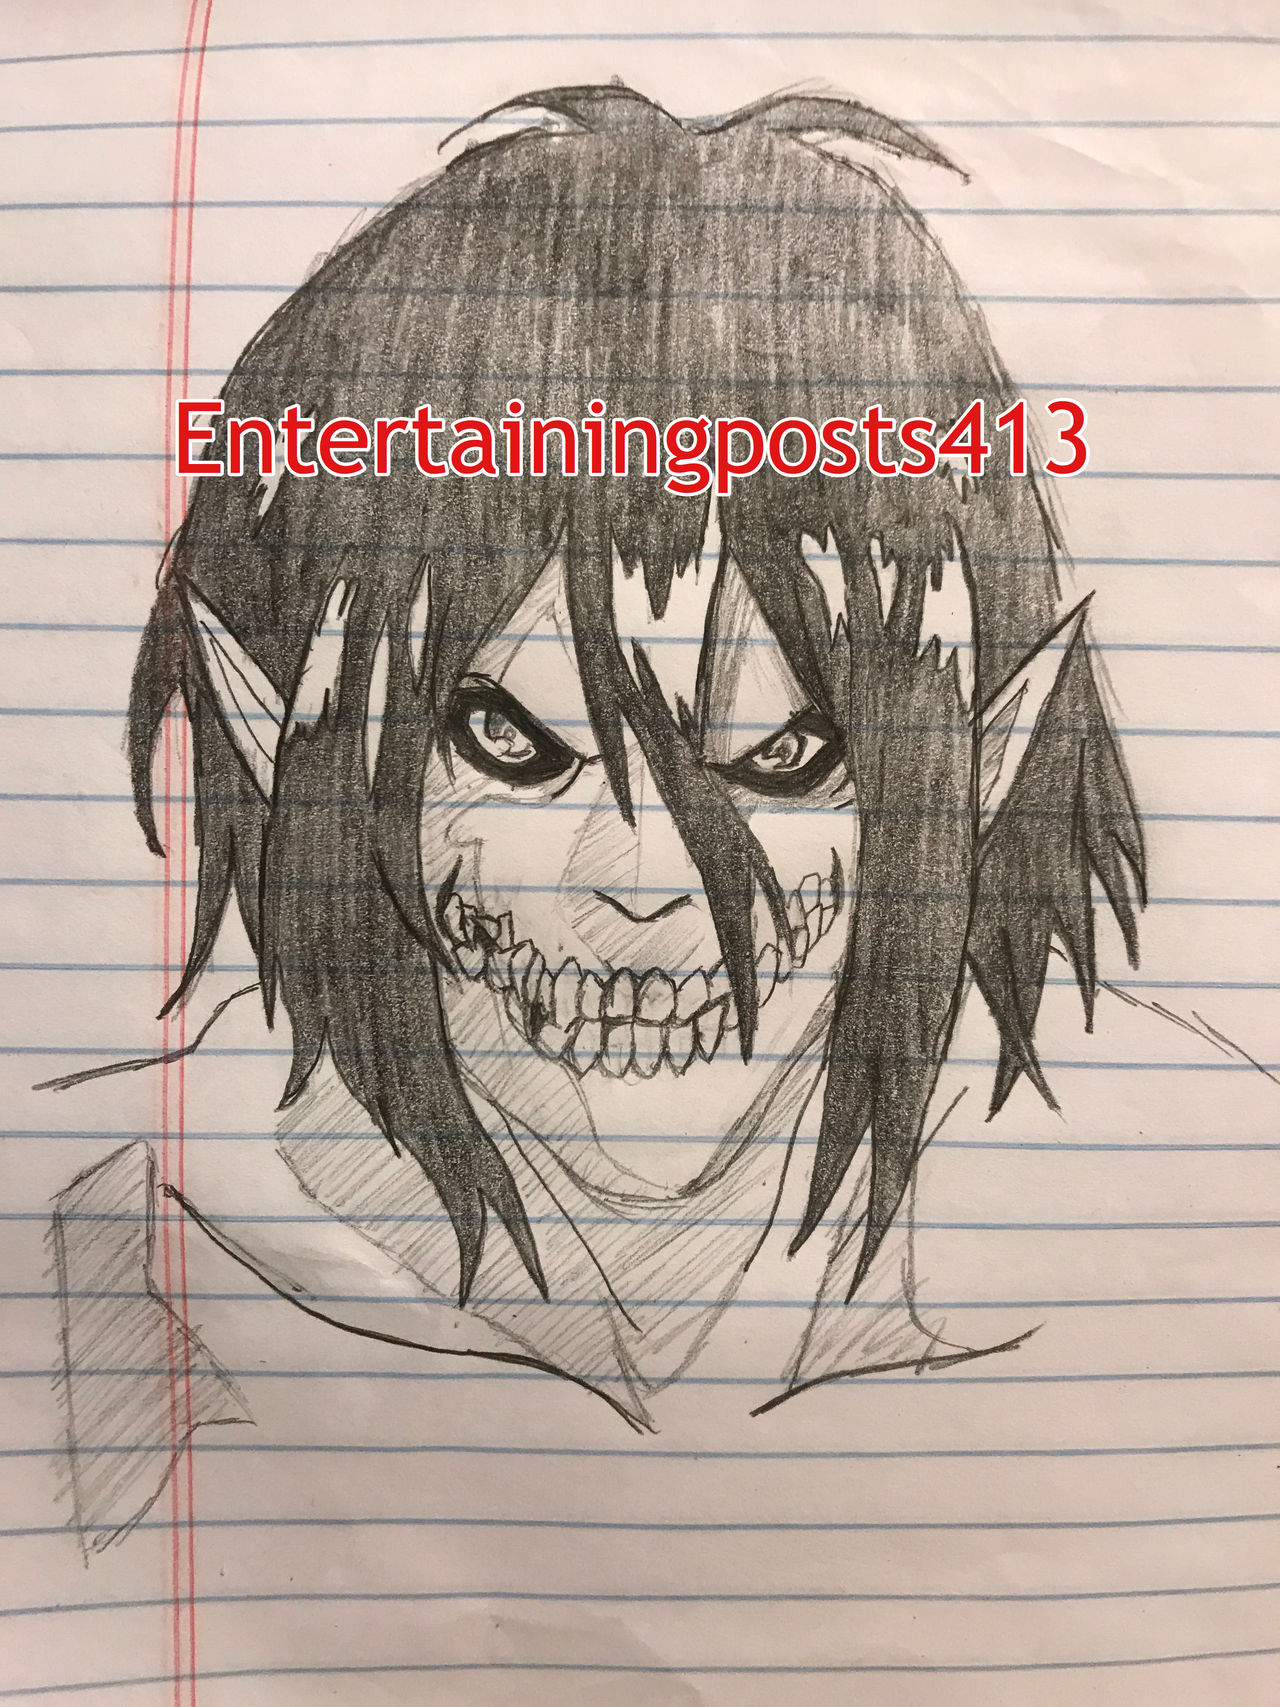 Eren Yeager Titan Form Complete By Entertainingposts413